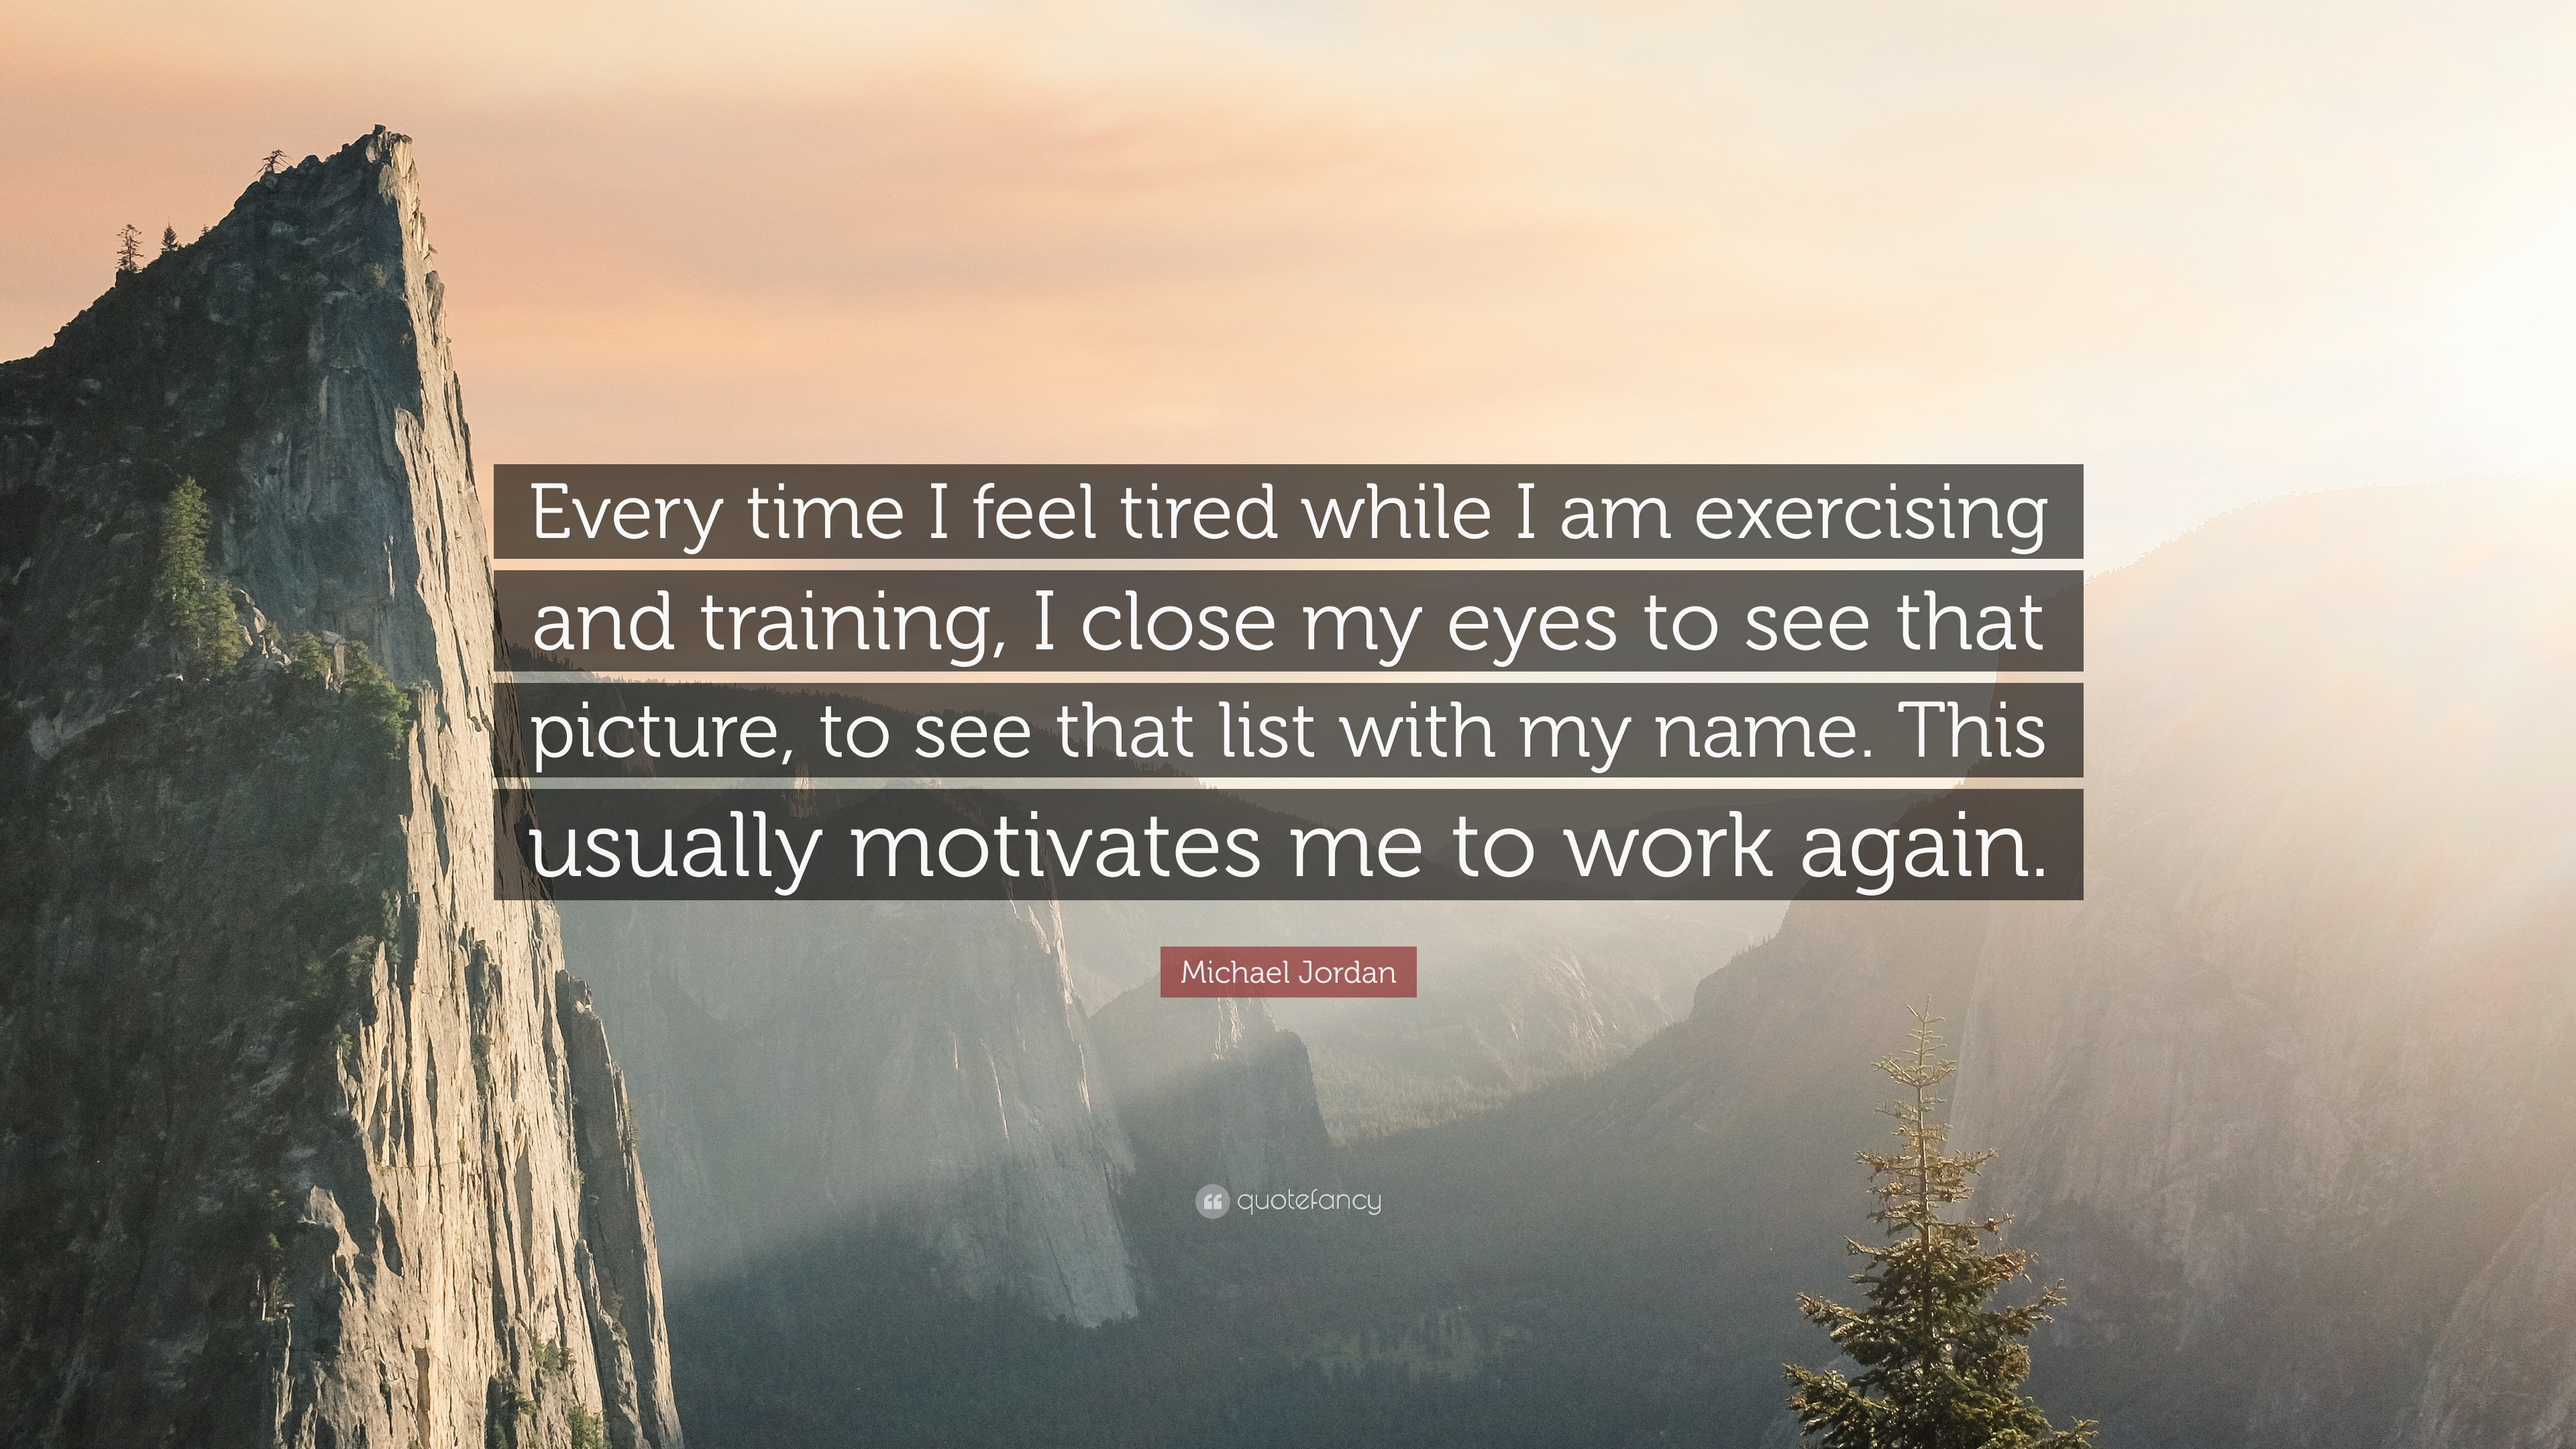 michael quote every time i feel tired while i am michael quote every time i feel tired while i am exercising and training